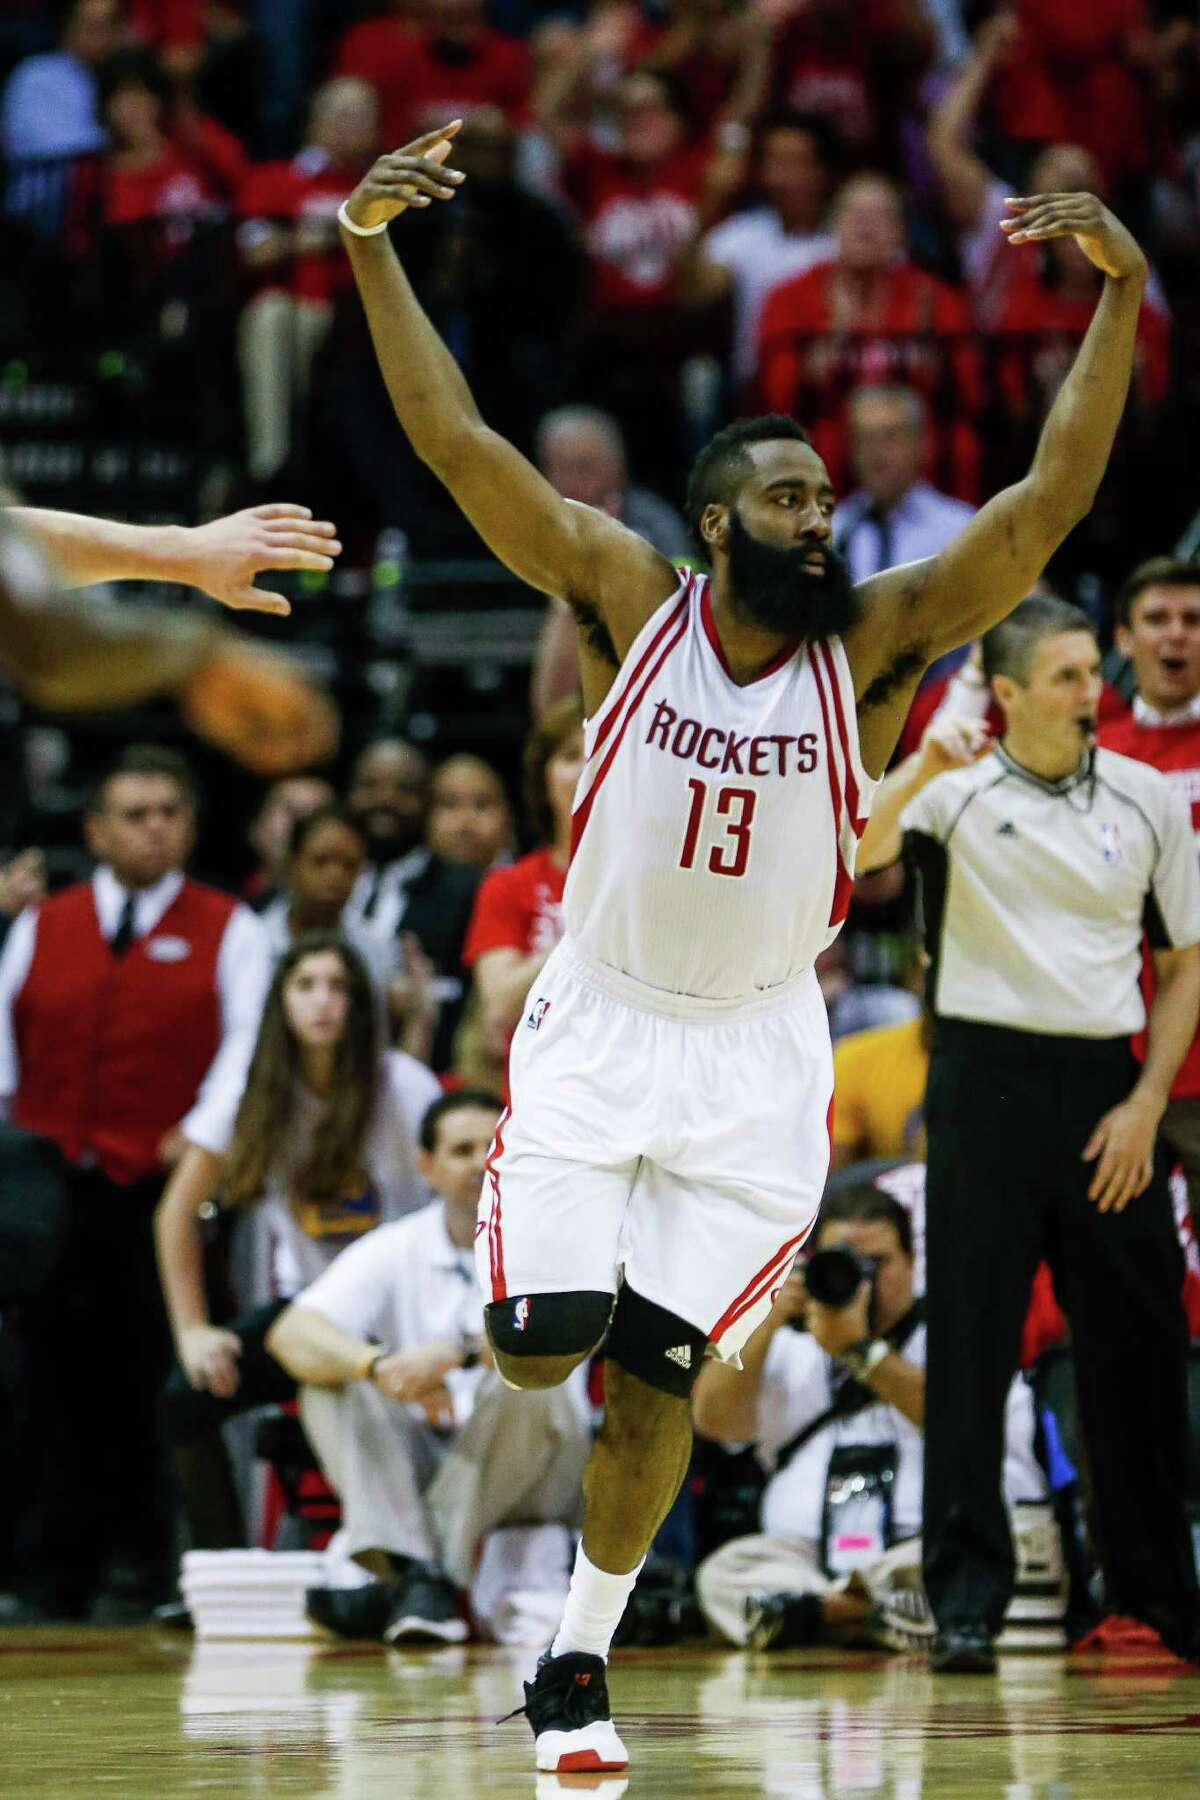 Houston Rockets guard James Harden (13) celebrates after a slam dunk against the Golden State Warriors during the second half in game three of a first-round NBA Playoffs series at Toyota Center Thursday, April 21, 2016 in Houston.